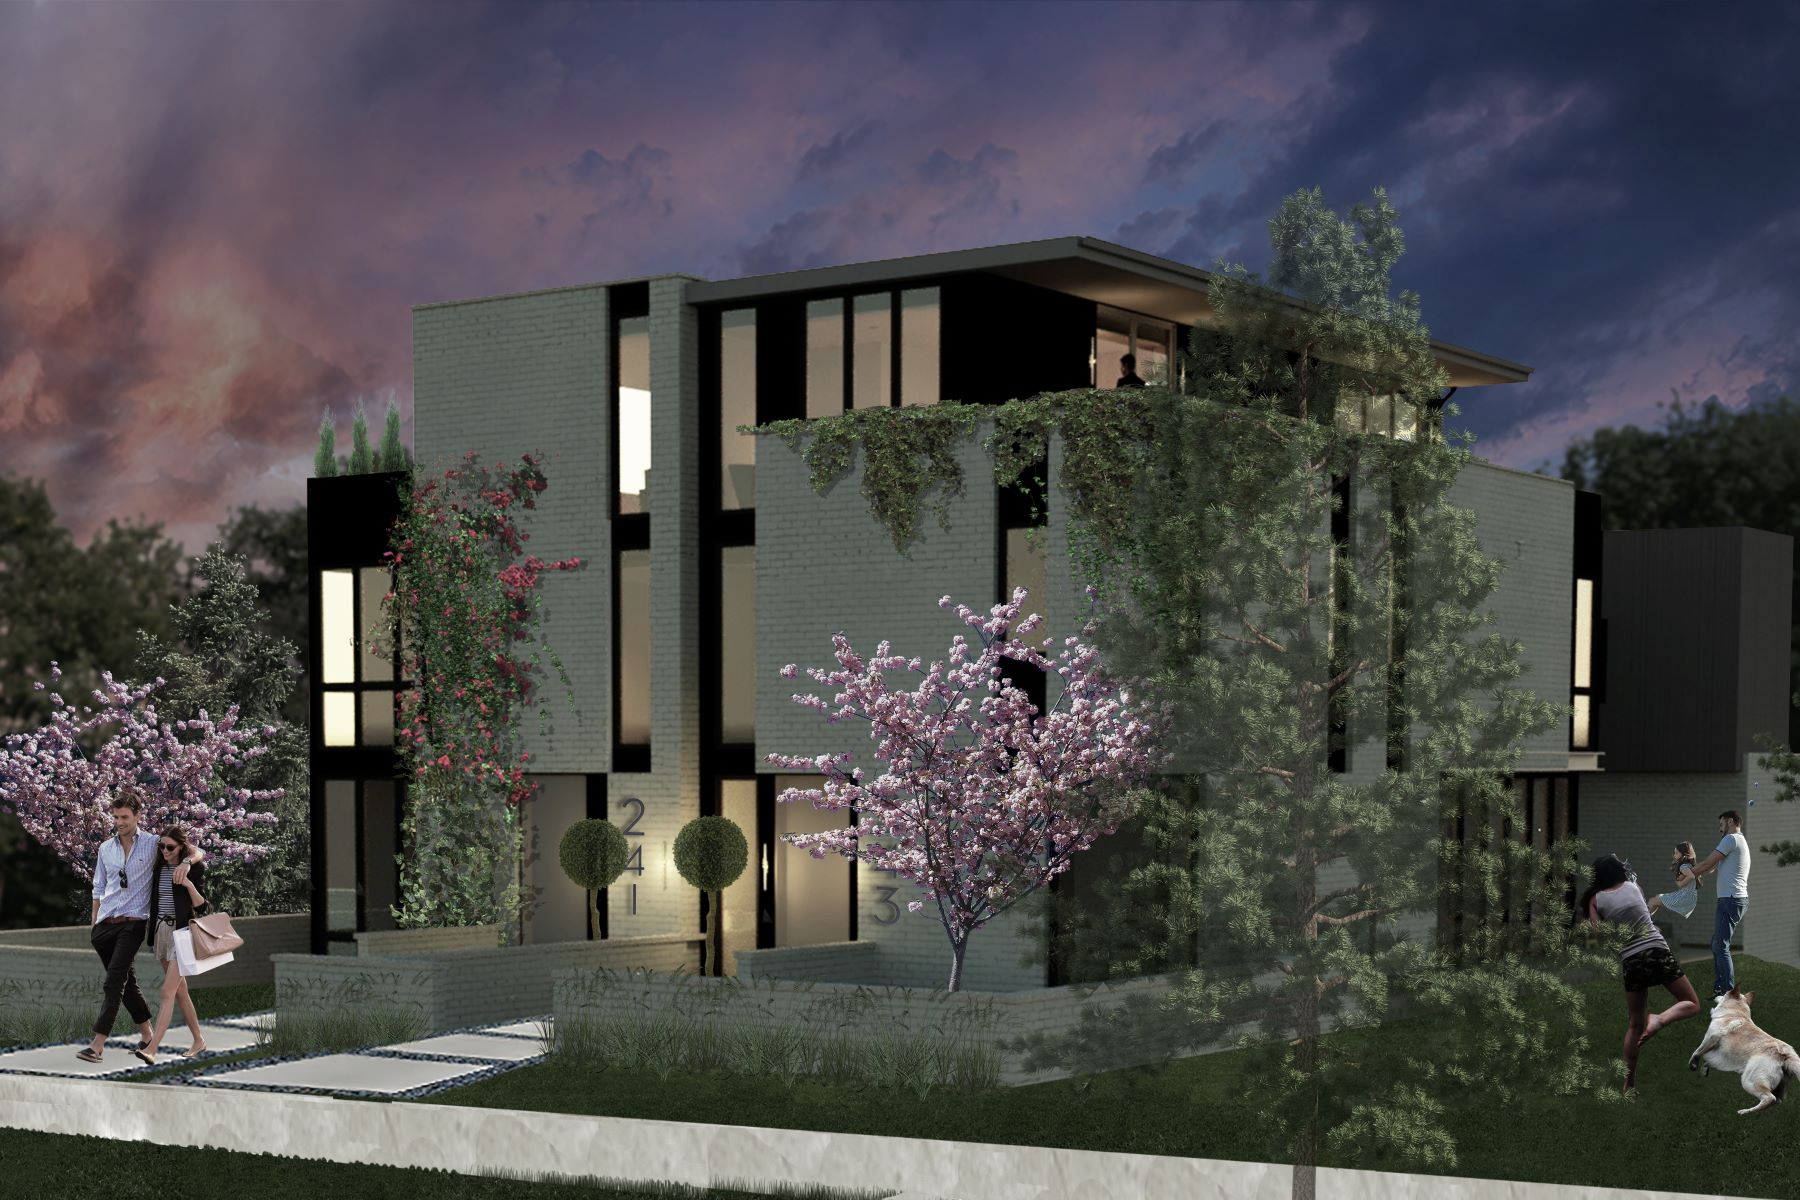 Single Family Homes for Active at Introducing North Pointe Ten in Cherry Creek North! 233 Garfield Street Denver, Colorado 80206 United States